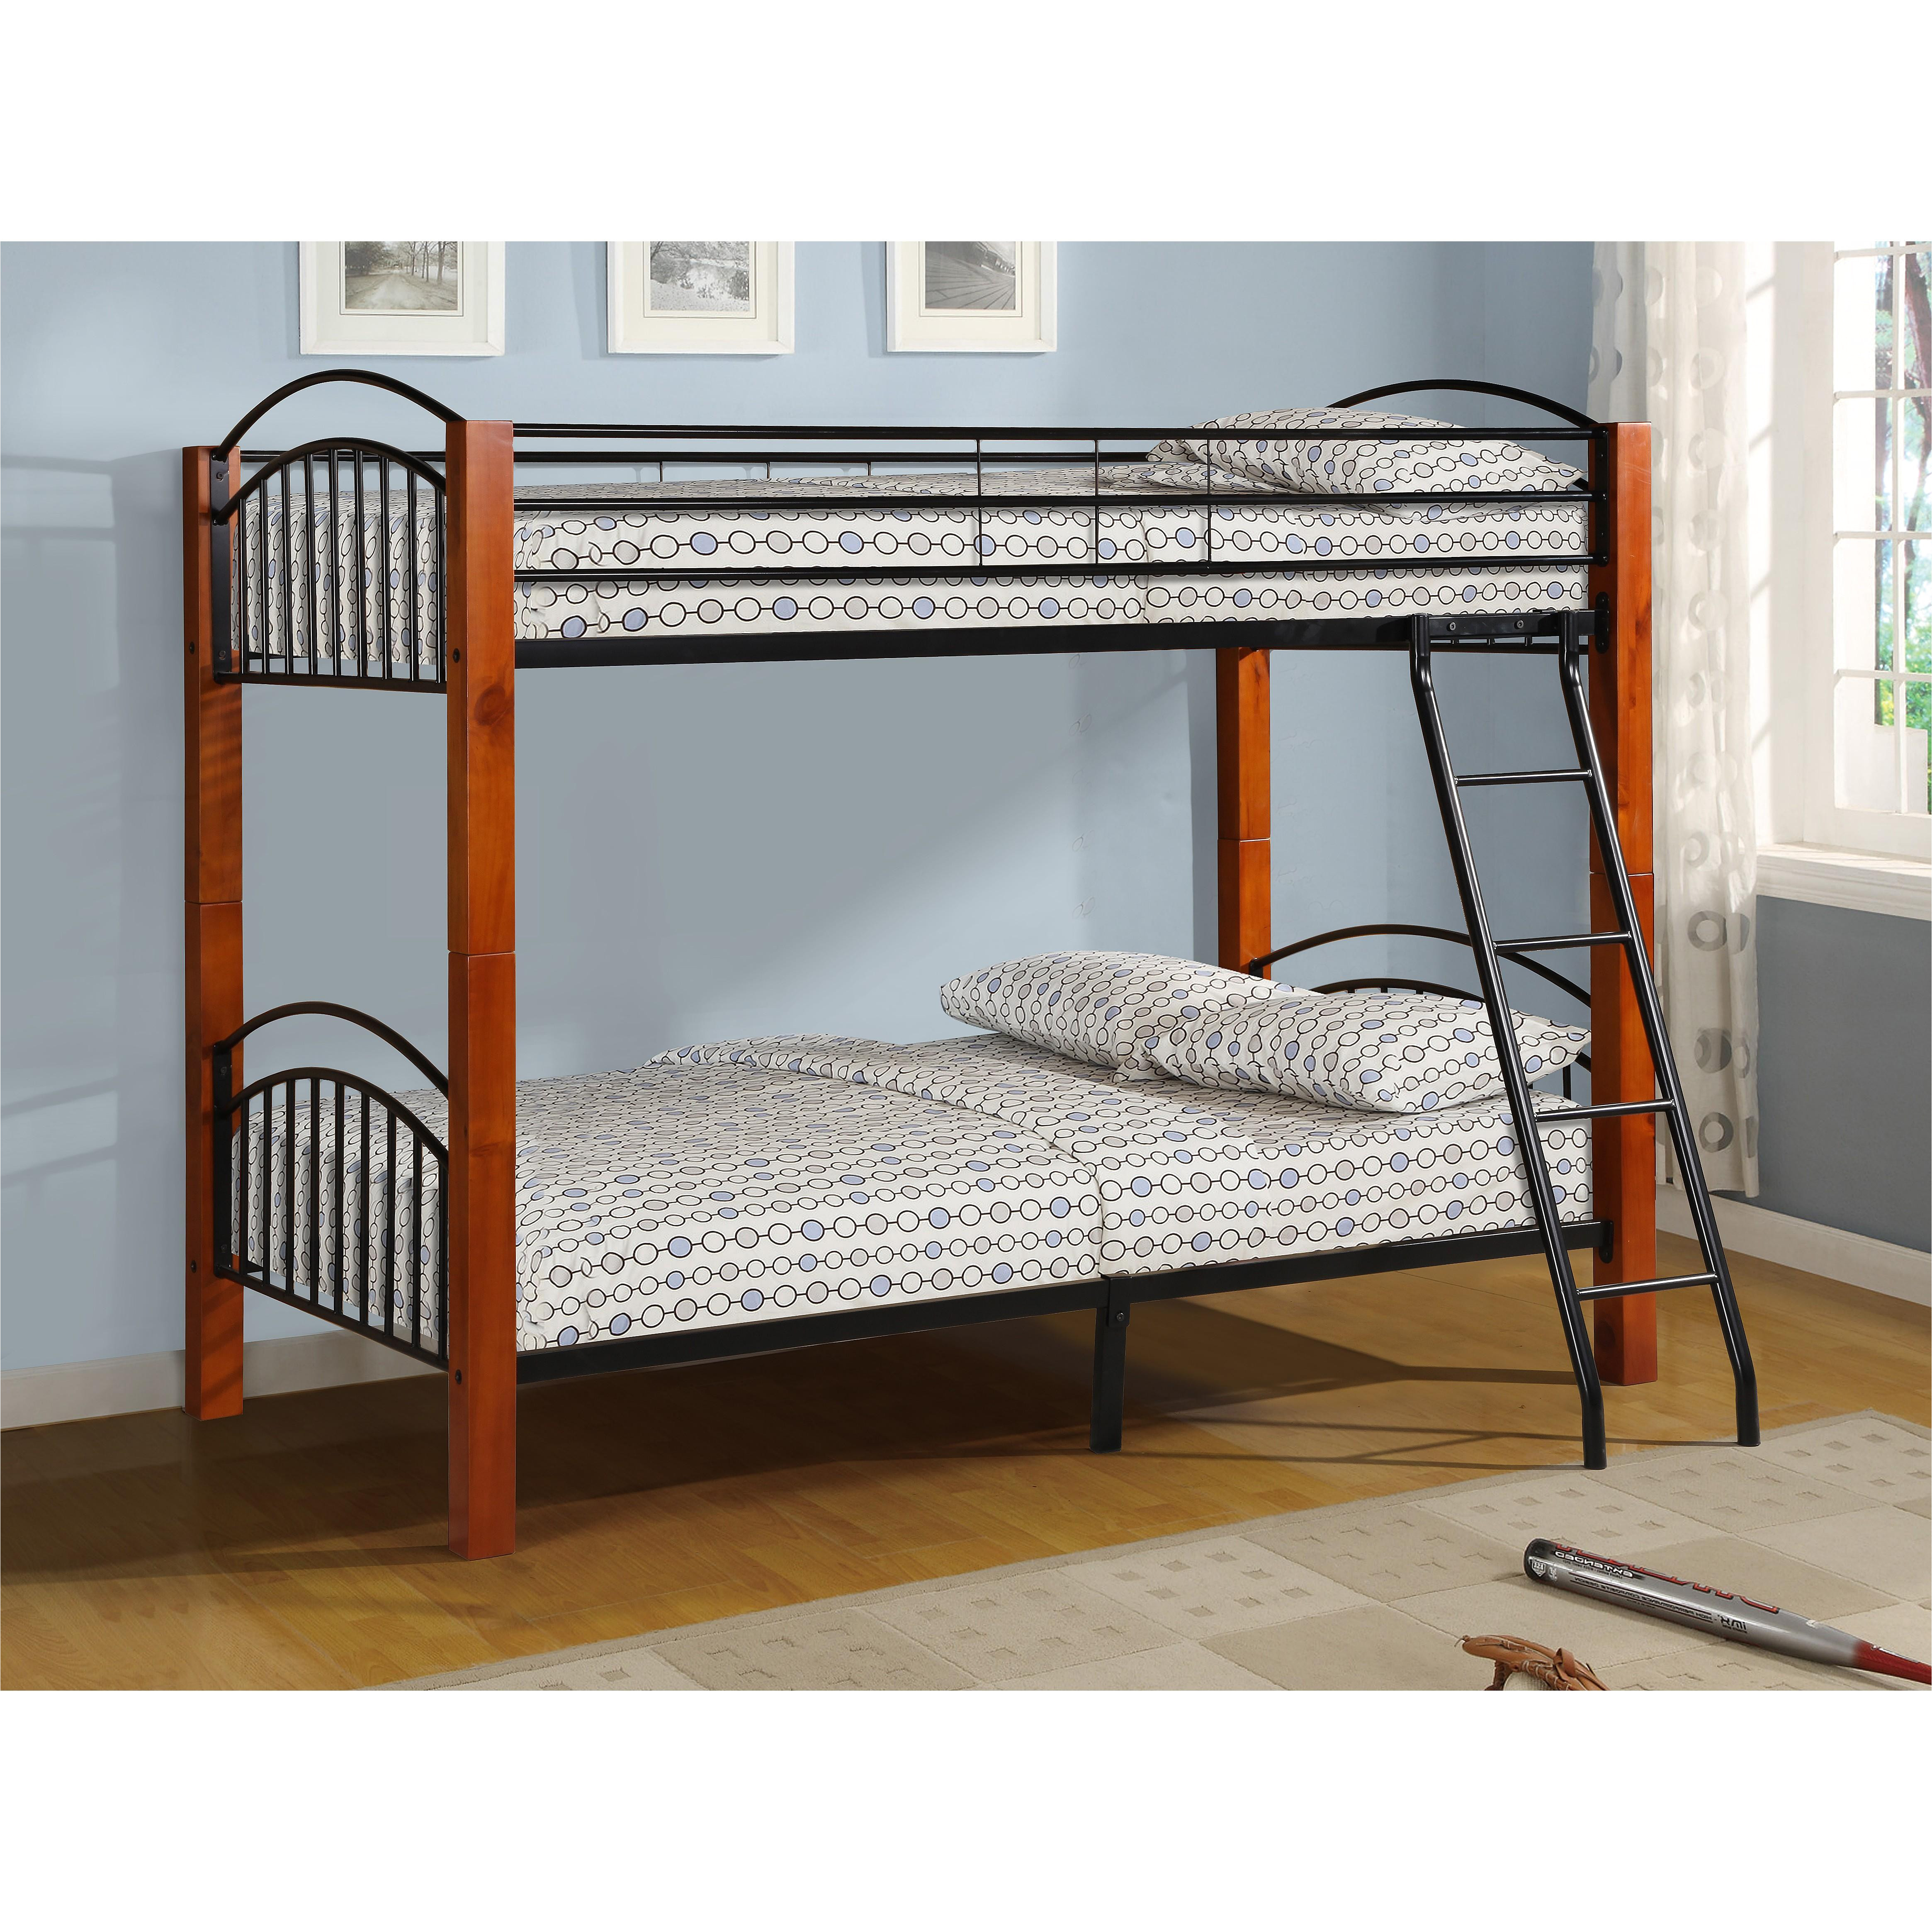 Svarta Bunk Bed Parts: Ikea Bunk Bed Assembly Instructions Pdf